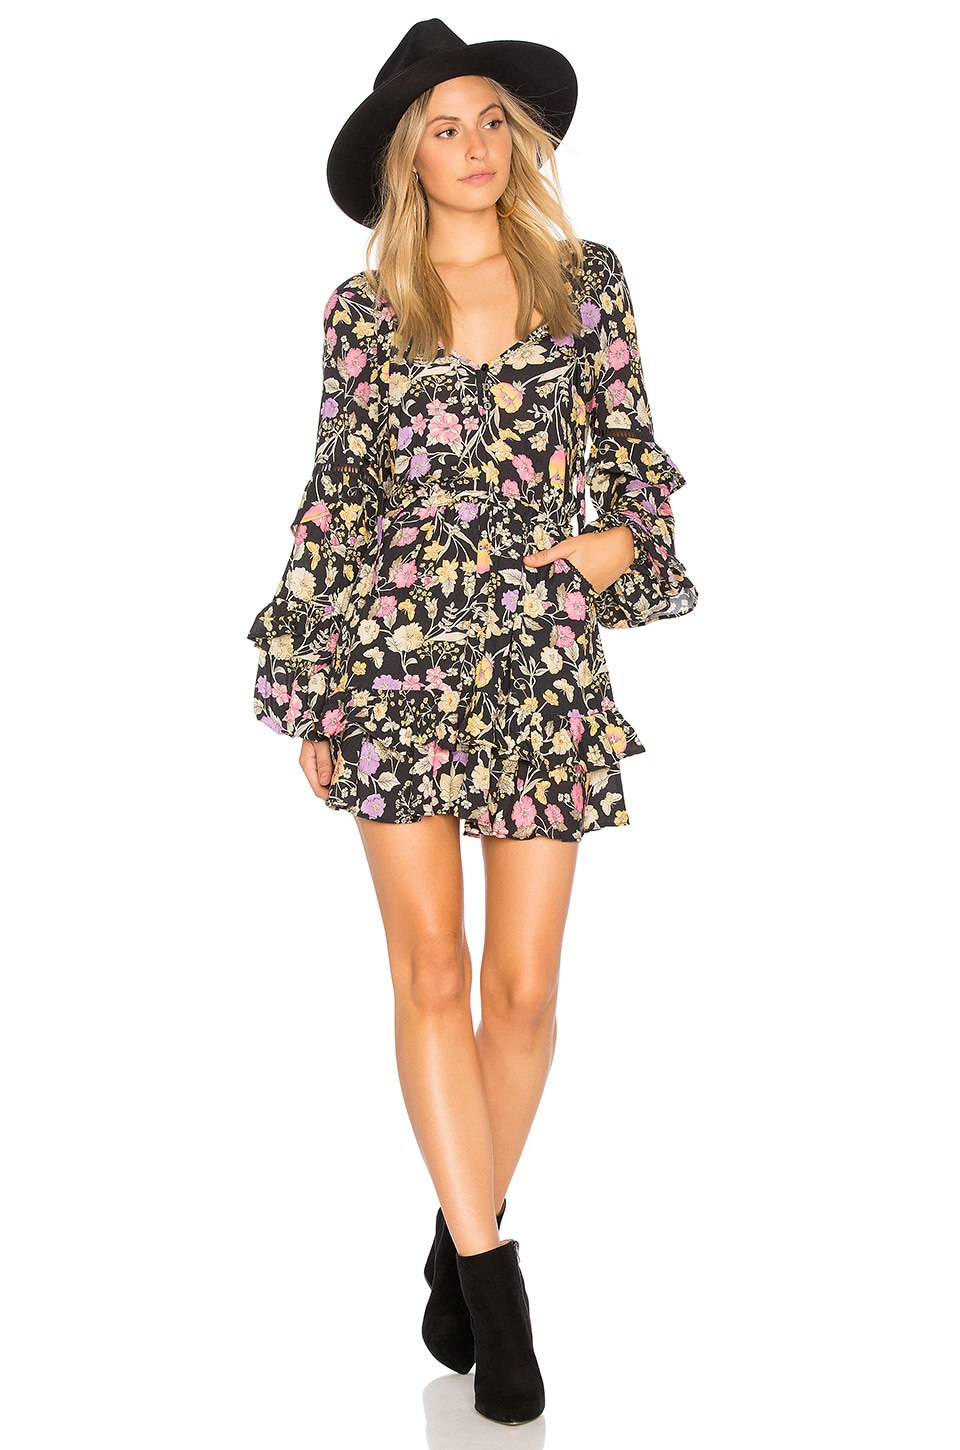 Spell & The Gypsy Collective Sayulita Frill Mini Dress in Nightshade